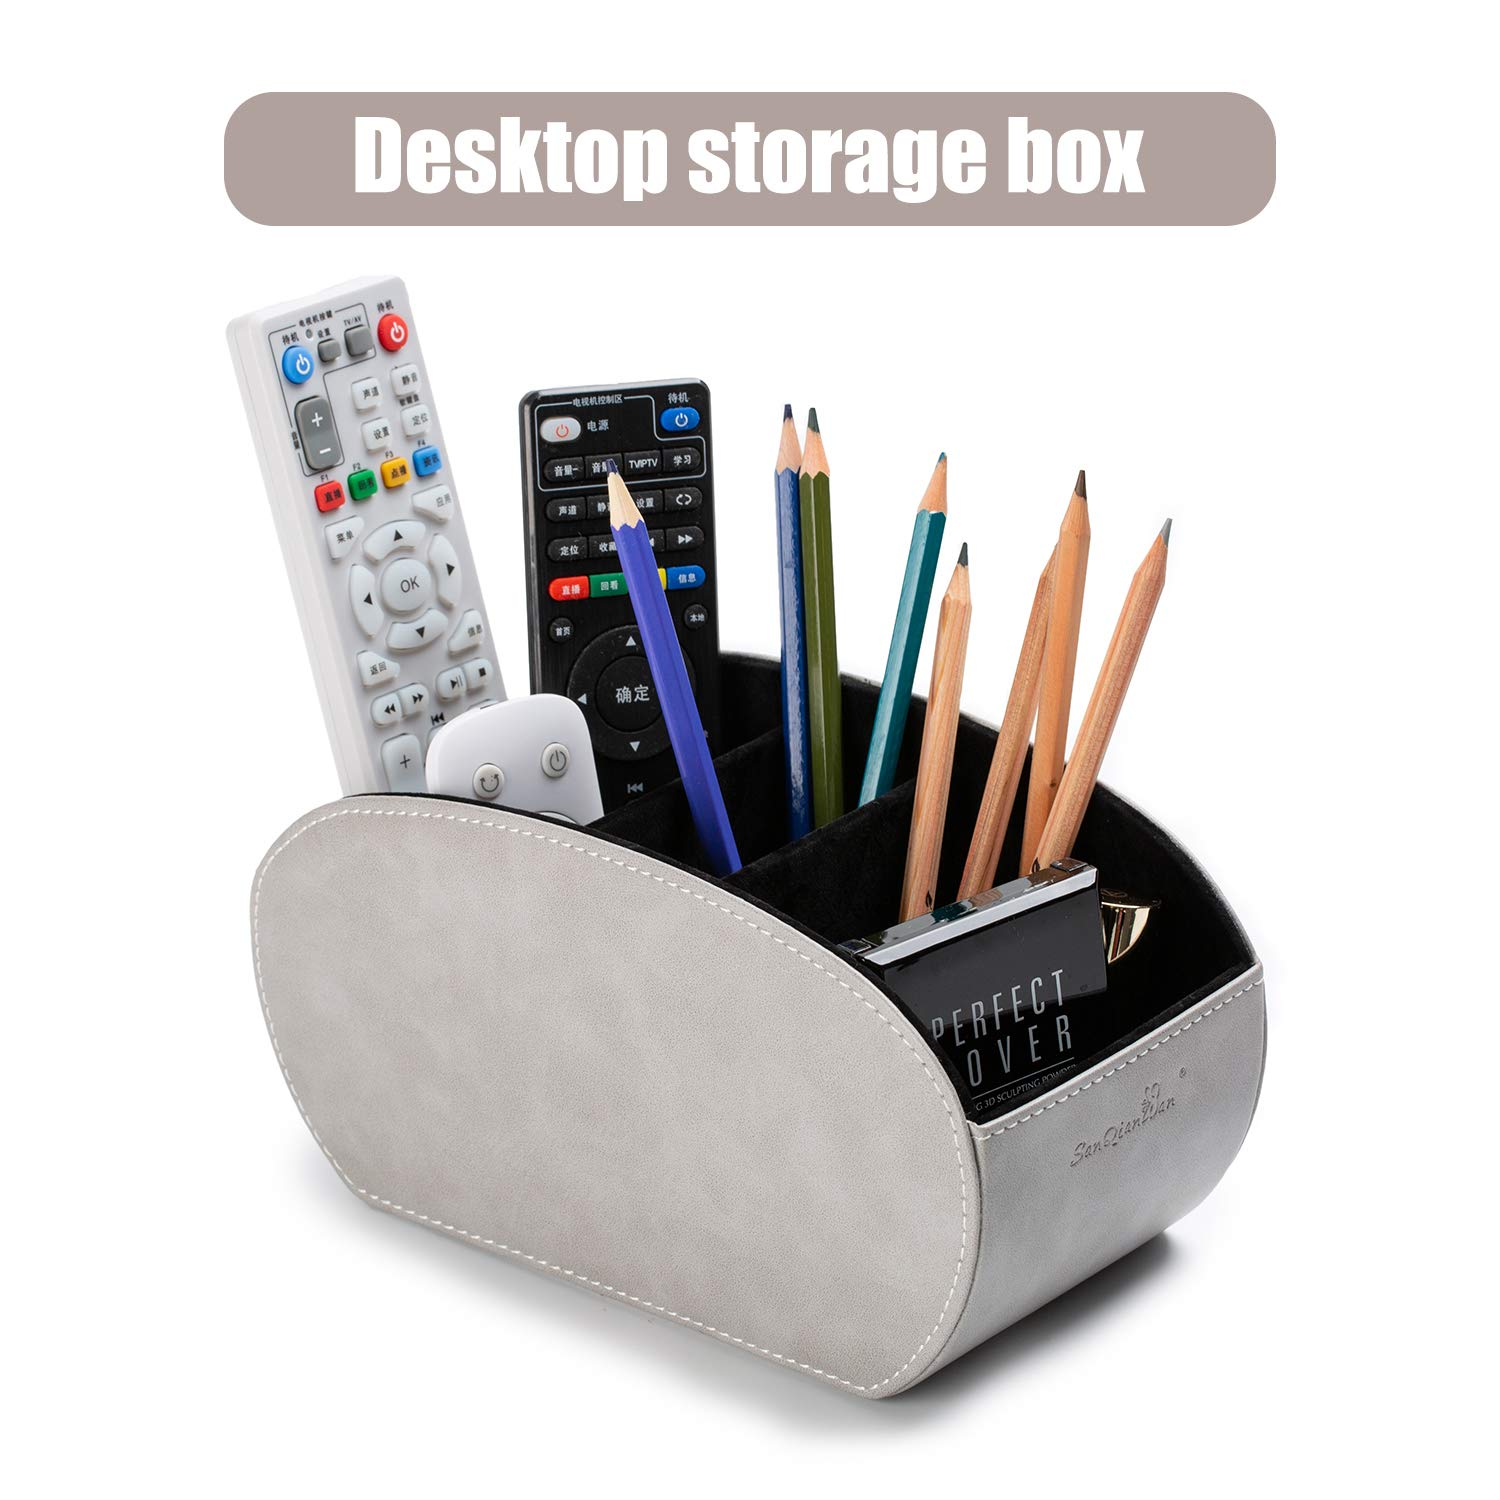 Tv Remote Control Holders Organizer Box with 5 Compartment PU Leather Multi-Functional Office Organization and Storage Caddy Store Tv Remote Holders,Brush,Pencil,Glasses and Media Player (Gray)